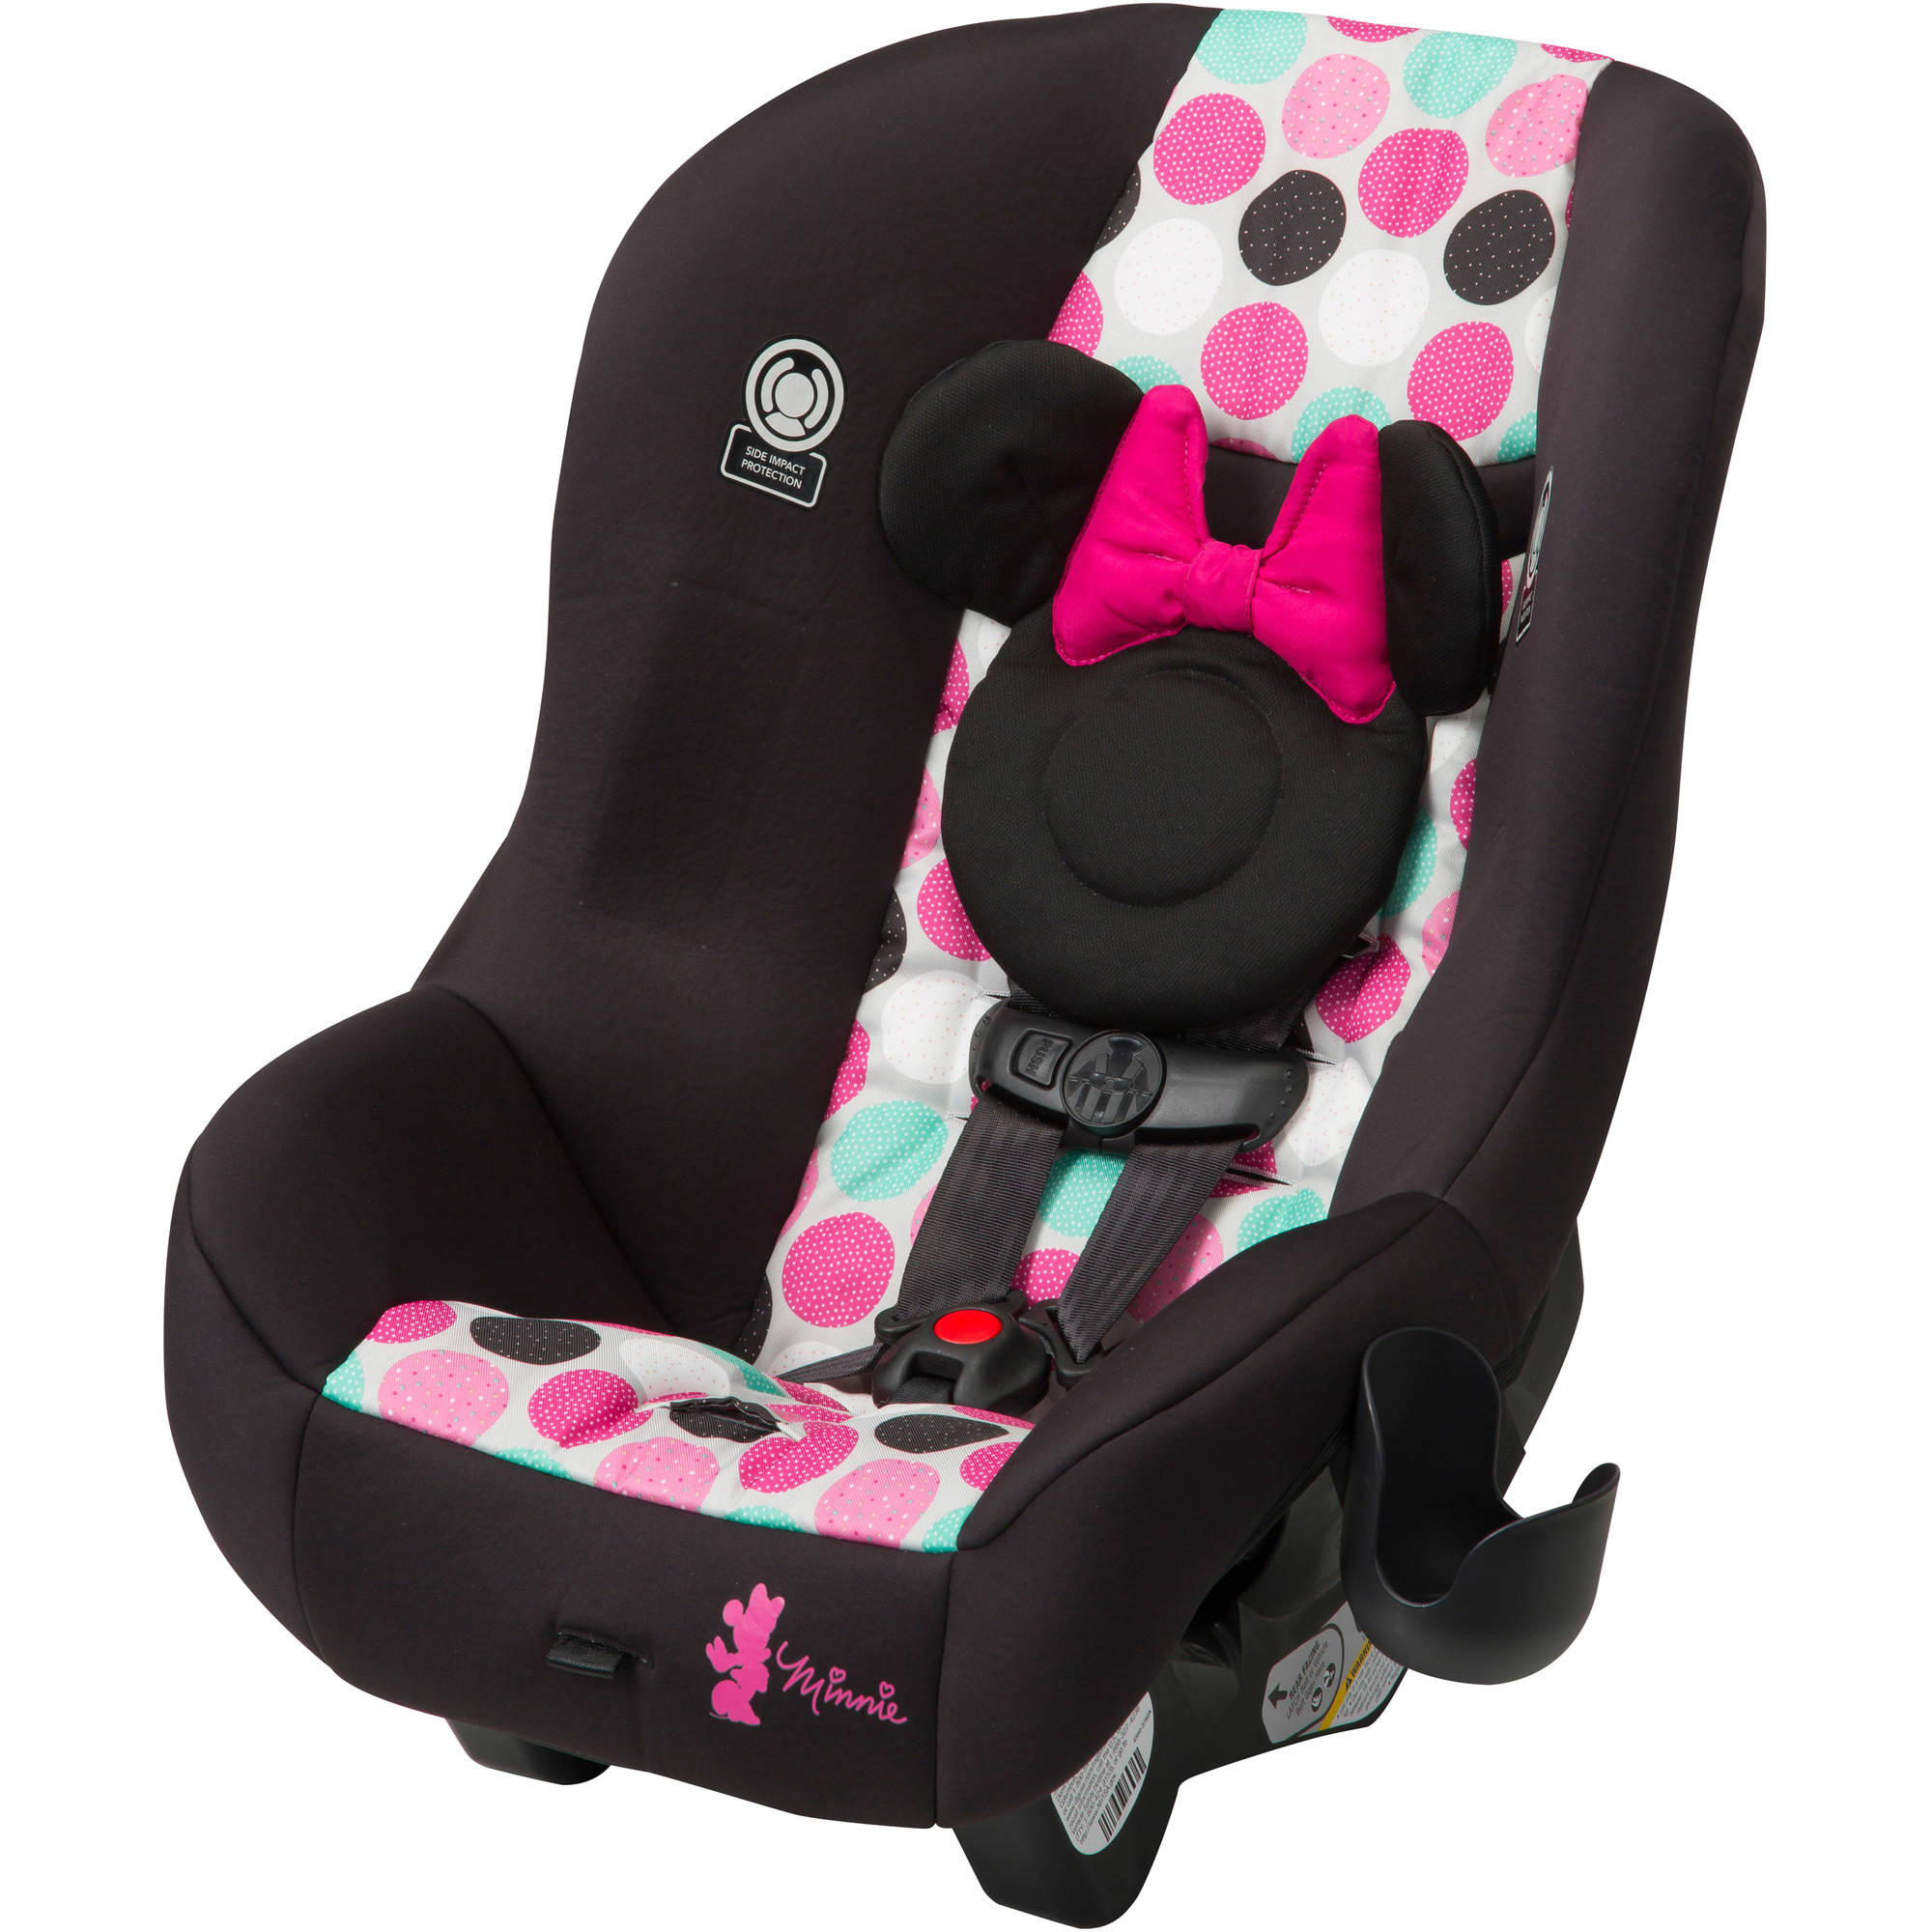 Cosco Disney Scenera NEXT Luxe Convertible Car Seat, Choose your Character